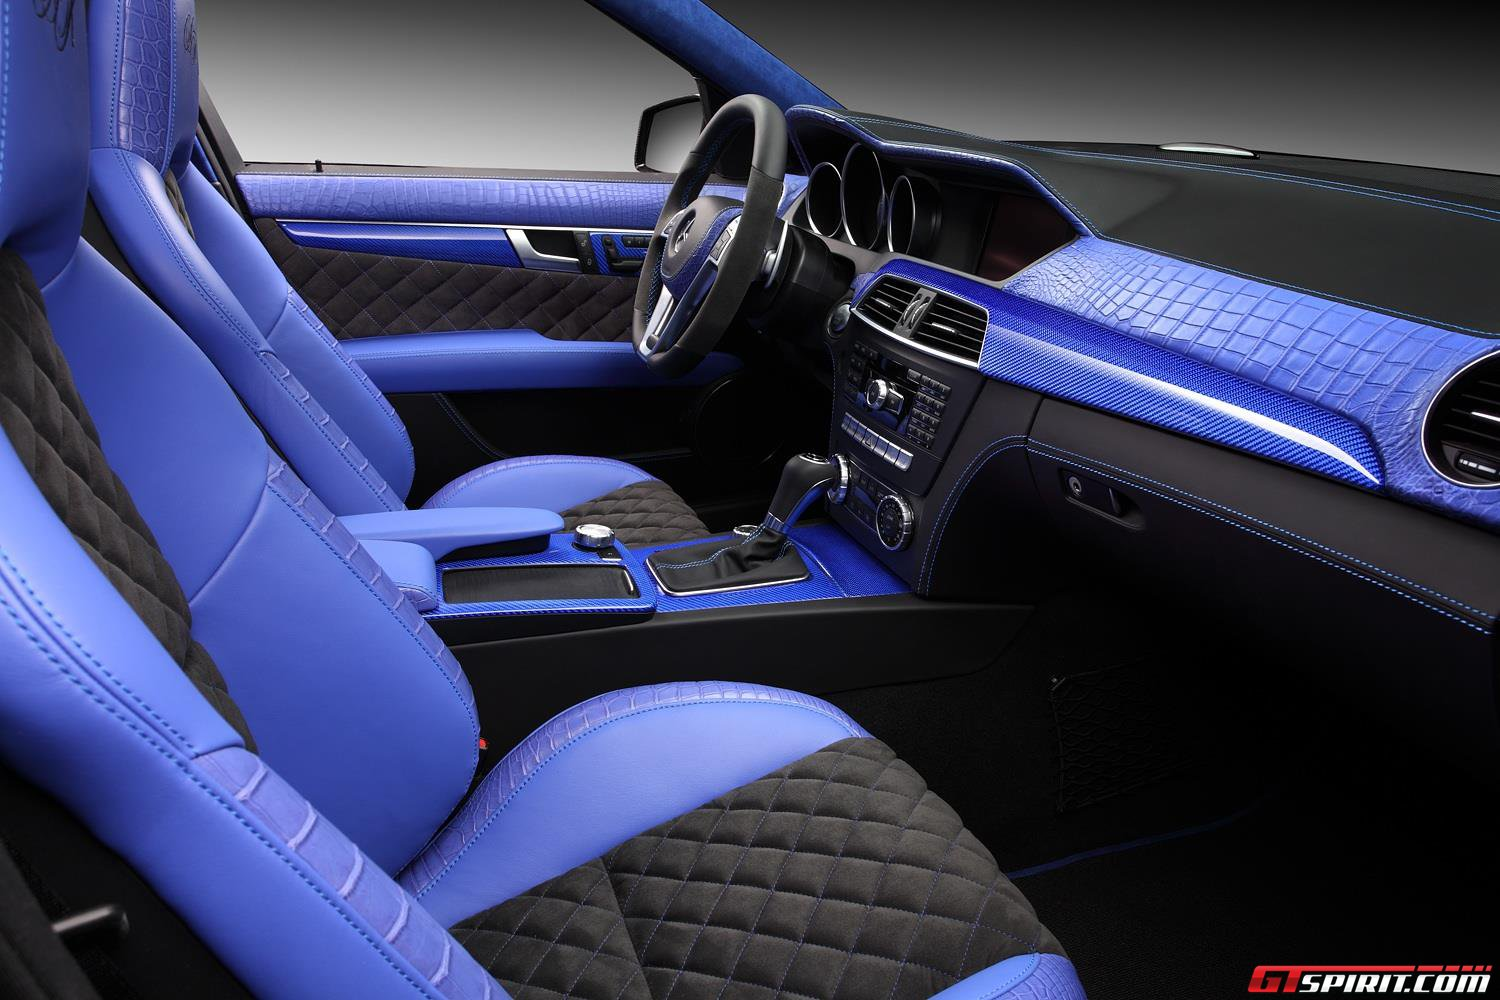 topcar fit mercedes benz c63 amg 39 s with blue crocodile skin interior for russian owner. Black Bedroom Furniture Sets. Home Design Ideas